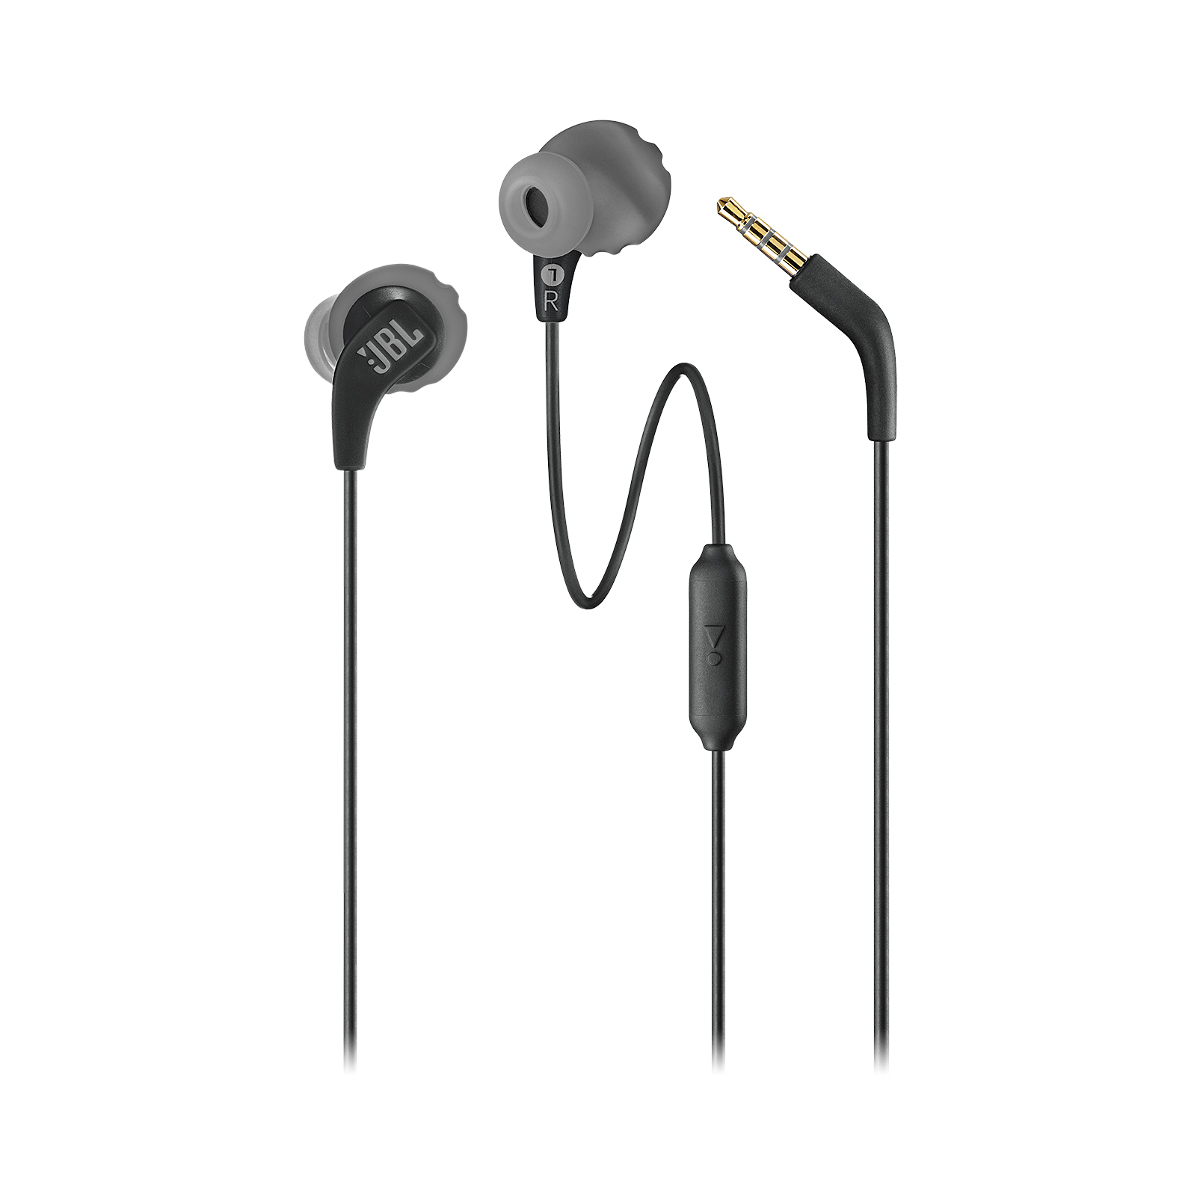 JBL Endurance RUN In-Ear Headphones - Color: Black, Black, large, image 4